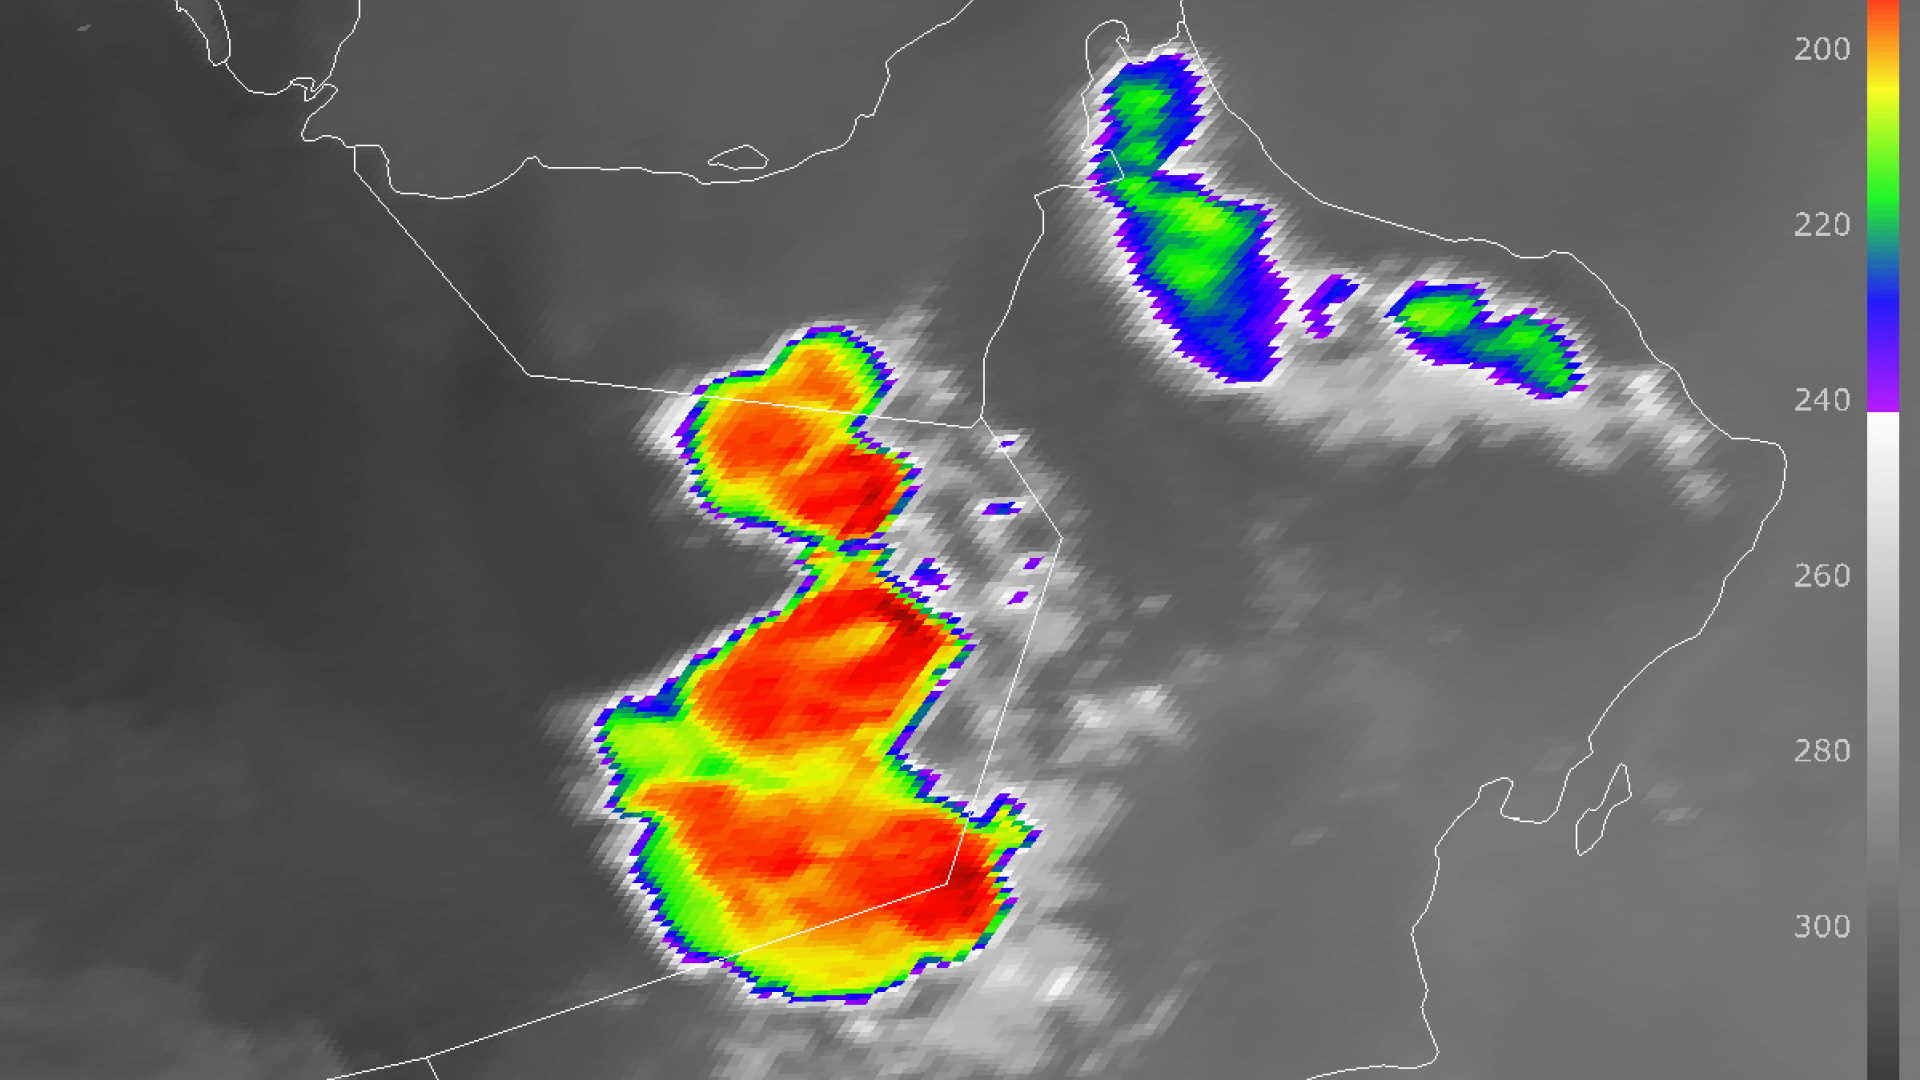 Ring-shape convective storms